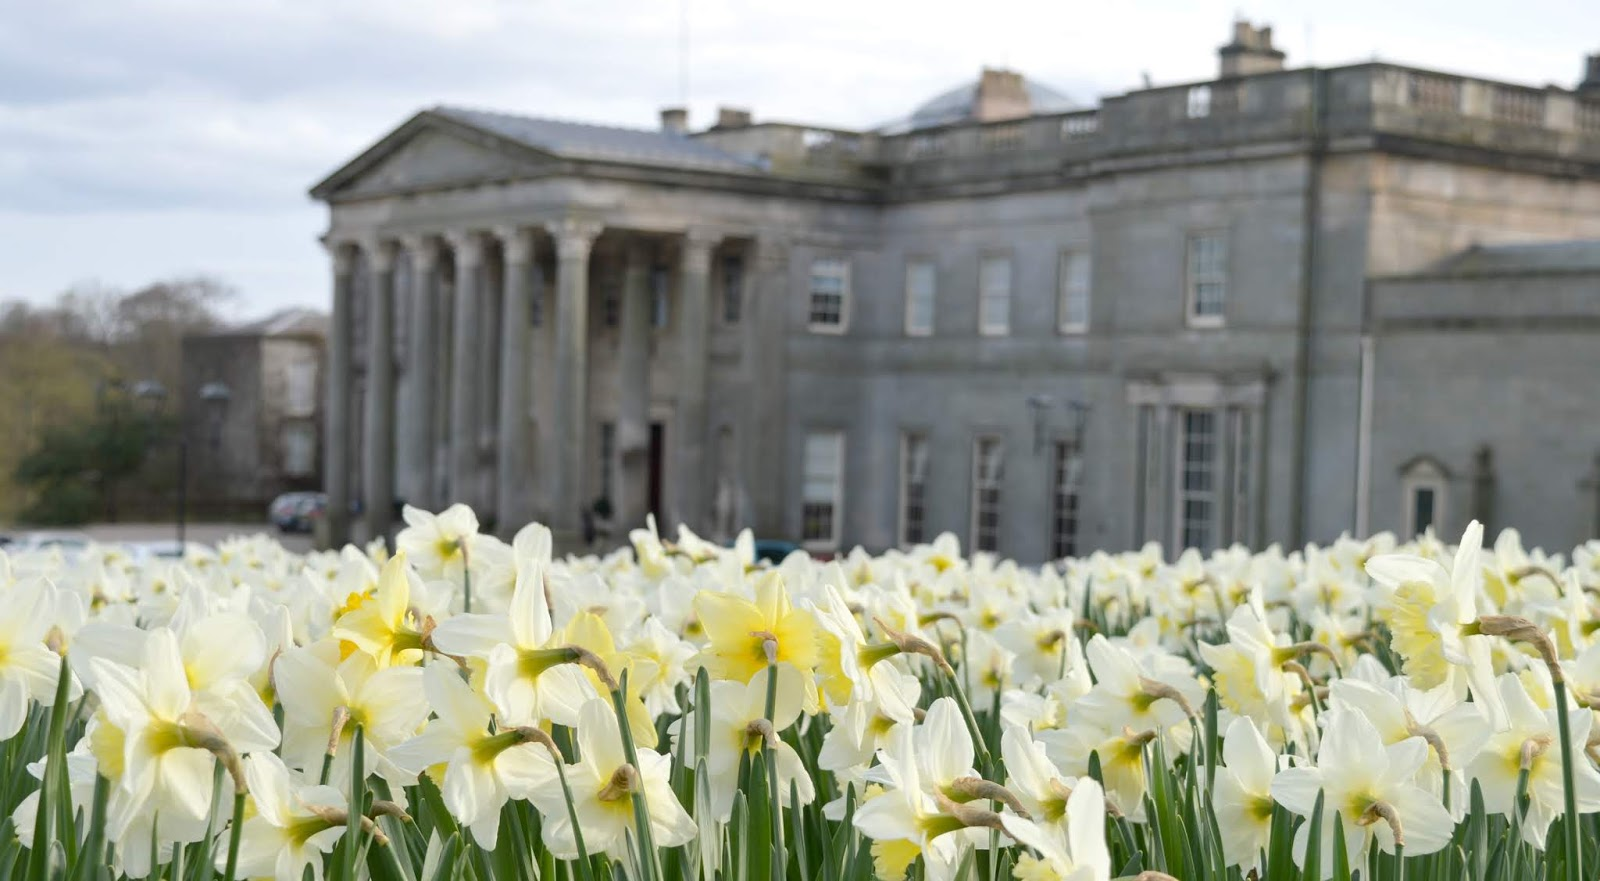 Daffodils at Wynyard Hall